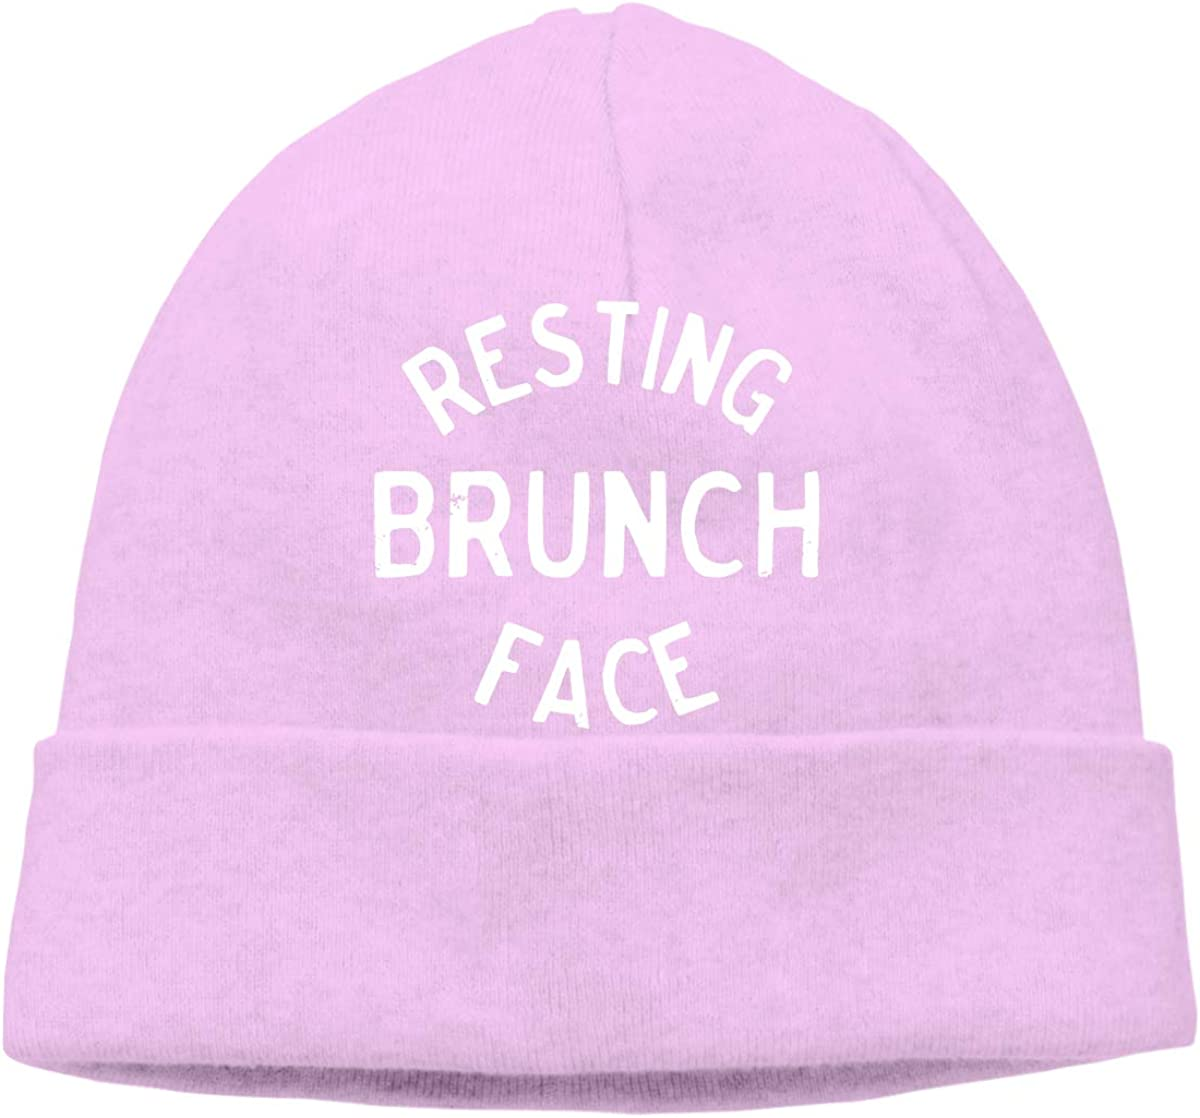 Daily Skiing Cap BF5Y3z/&MA Mens and Womens Resting Brunch Face Knit Cap